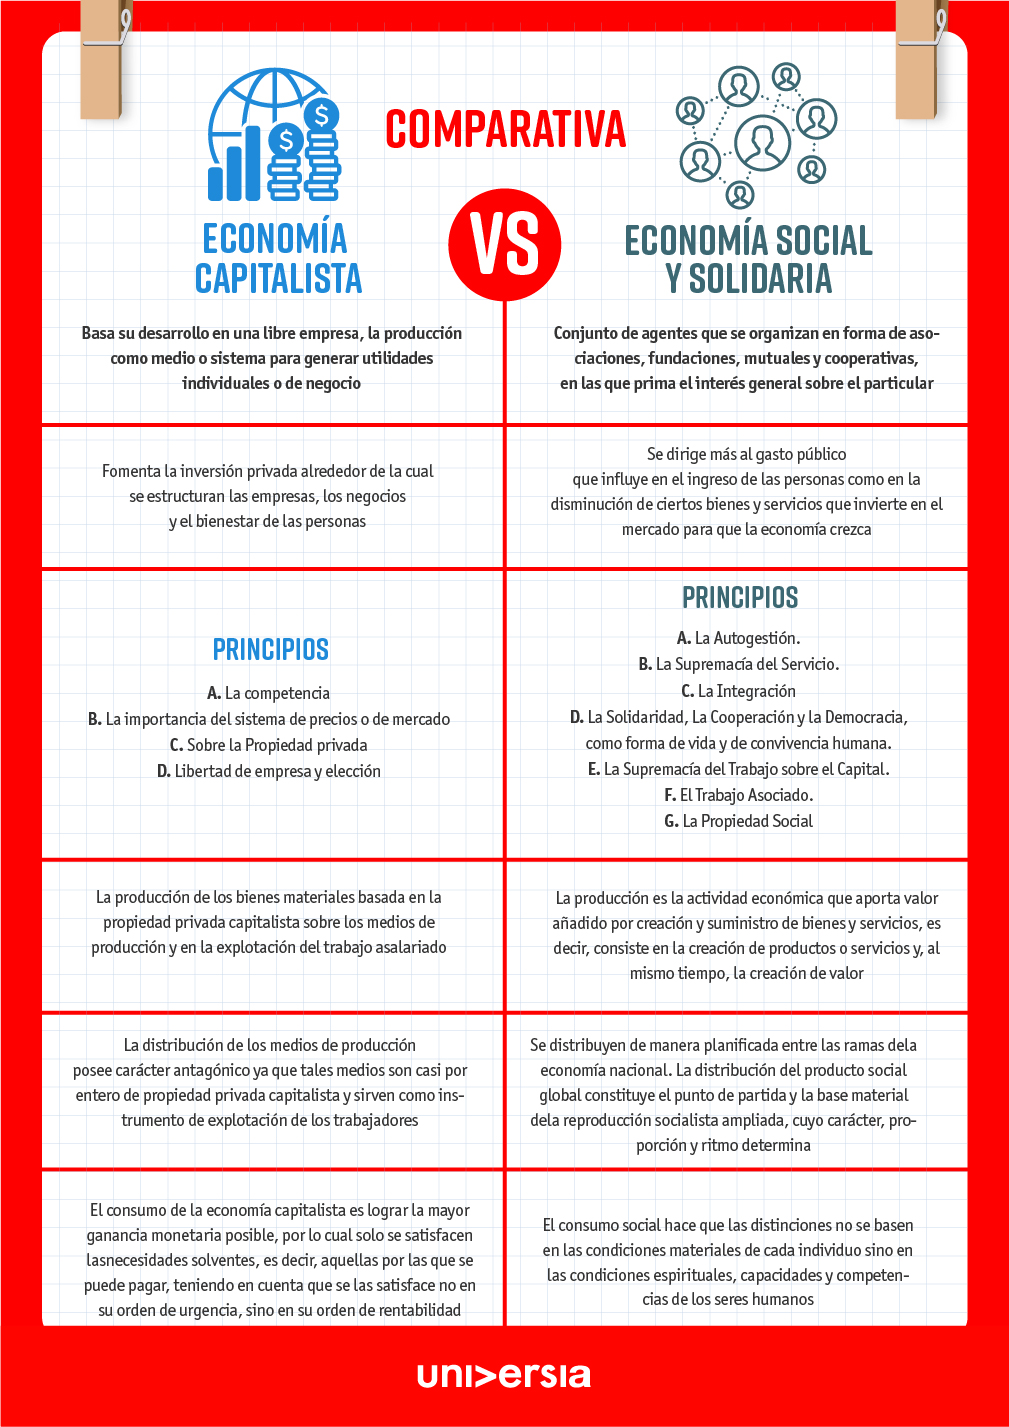 Economía solidaria vs capitalista: tabla comparativa